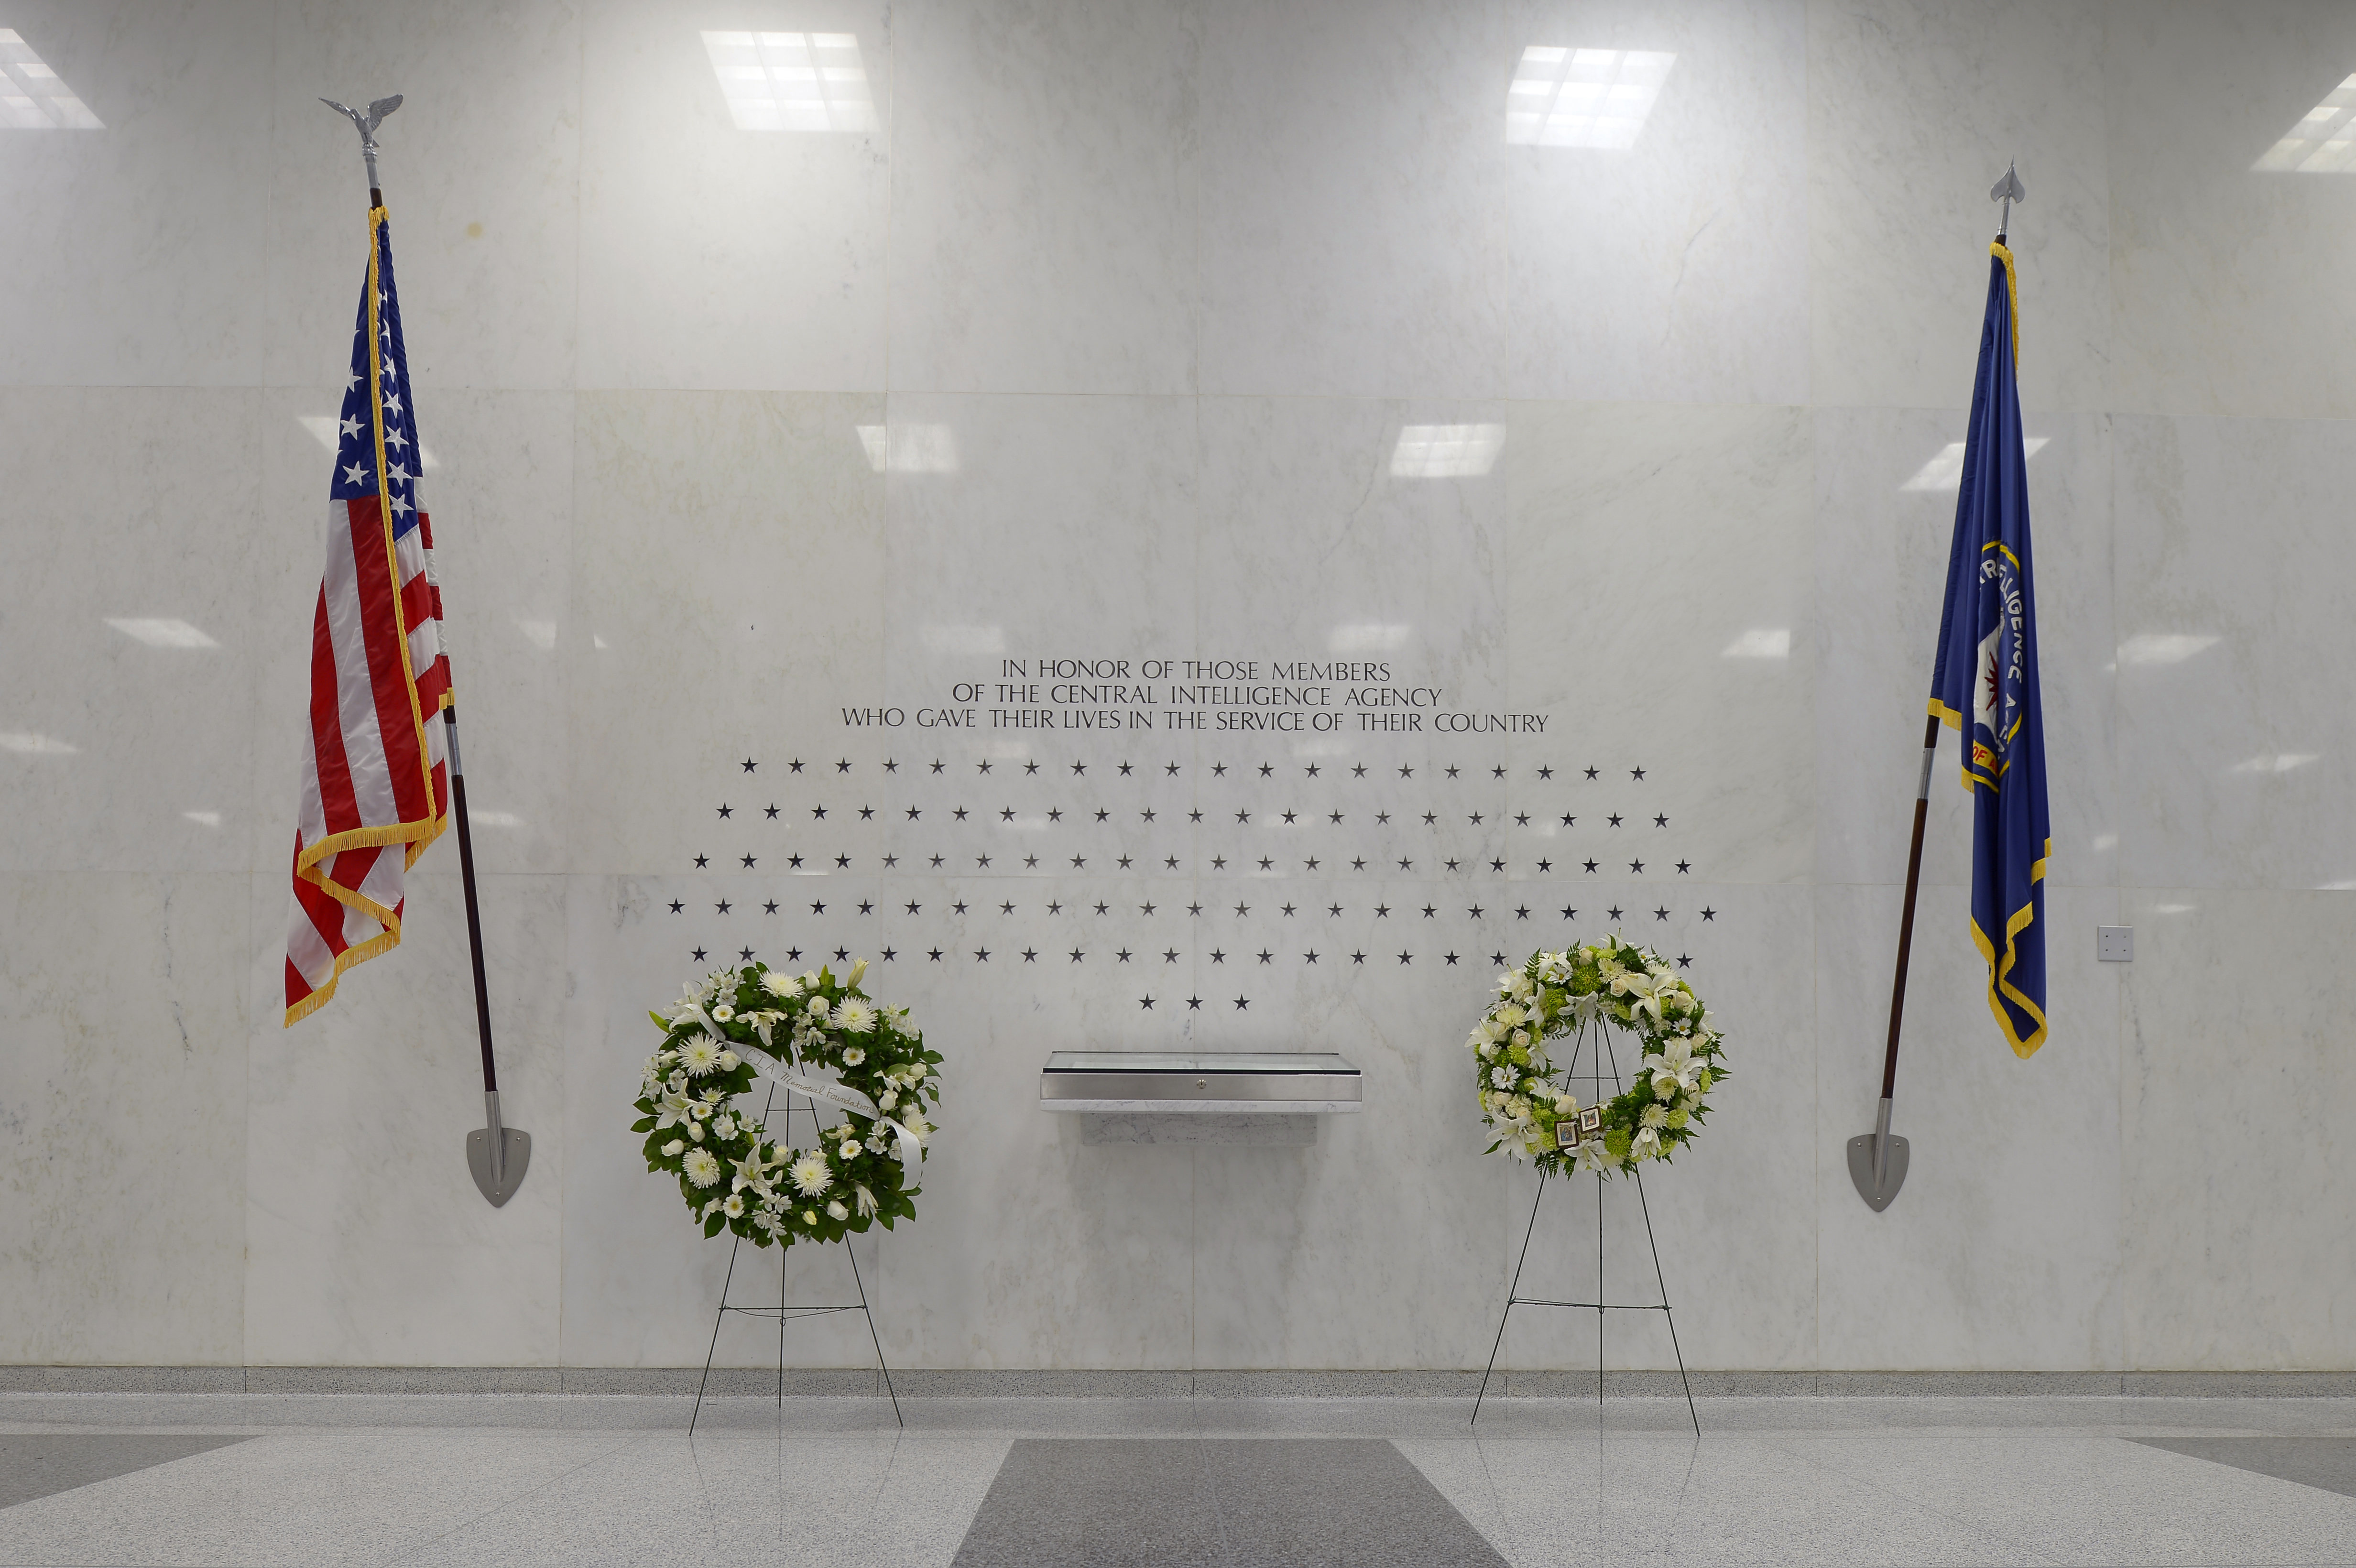 CIA star for death by suicide sparks debate on wall honor